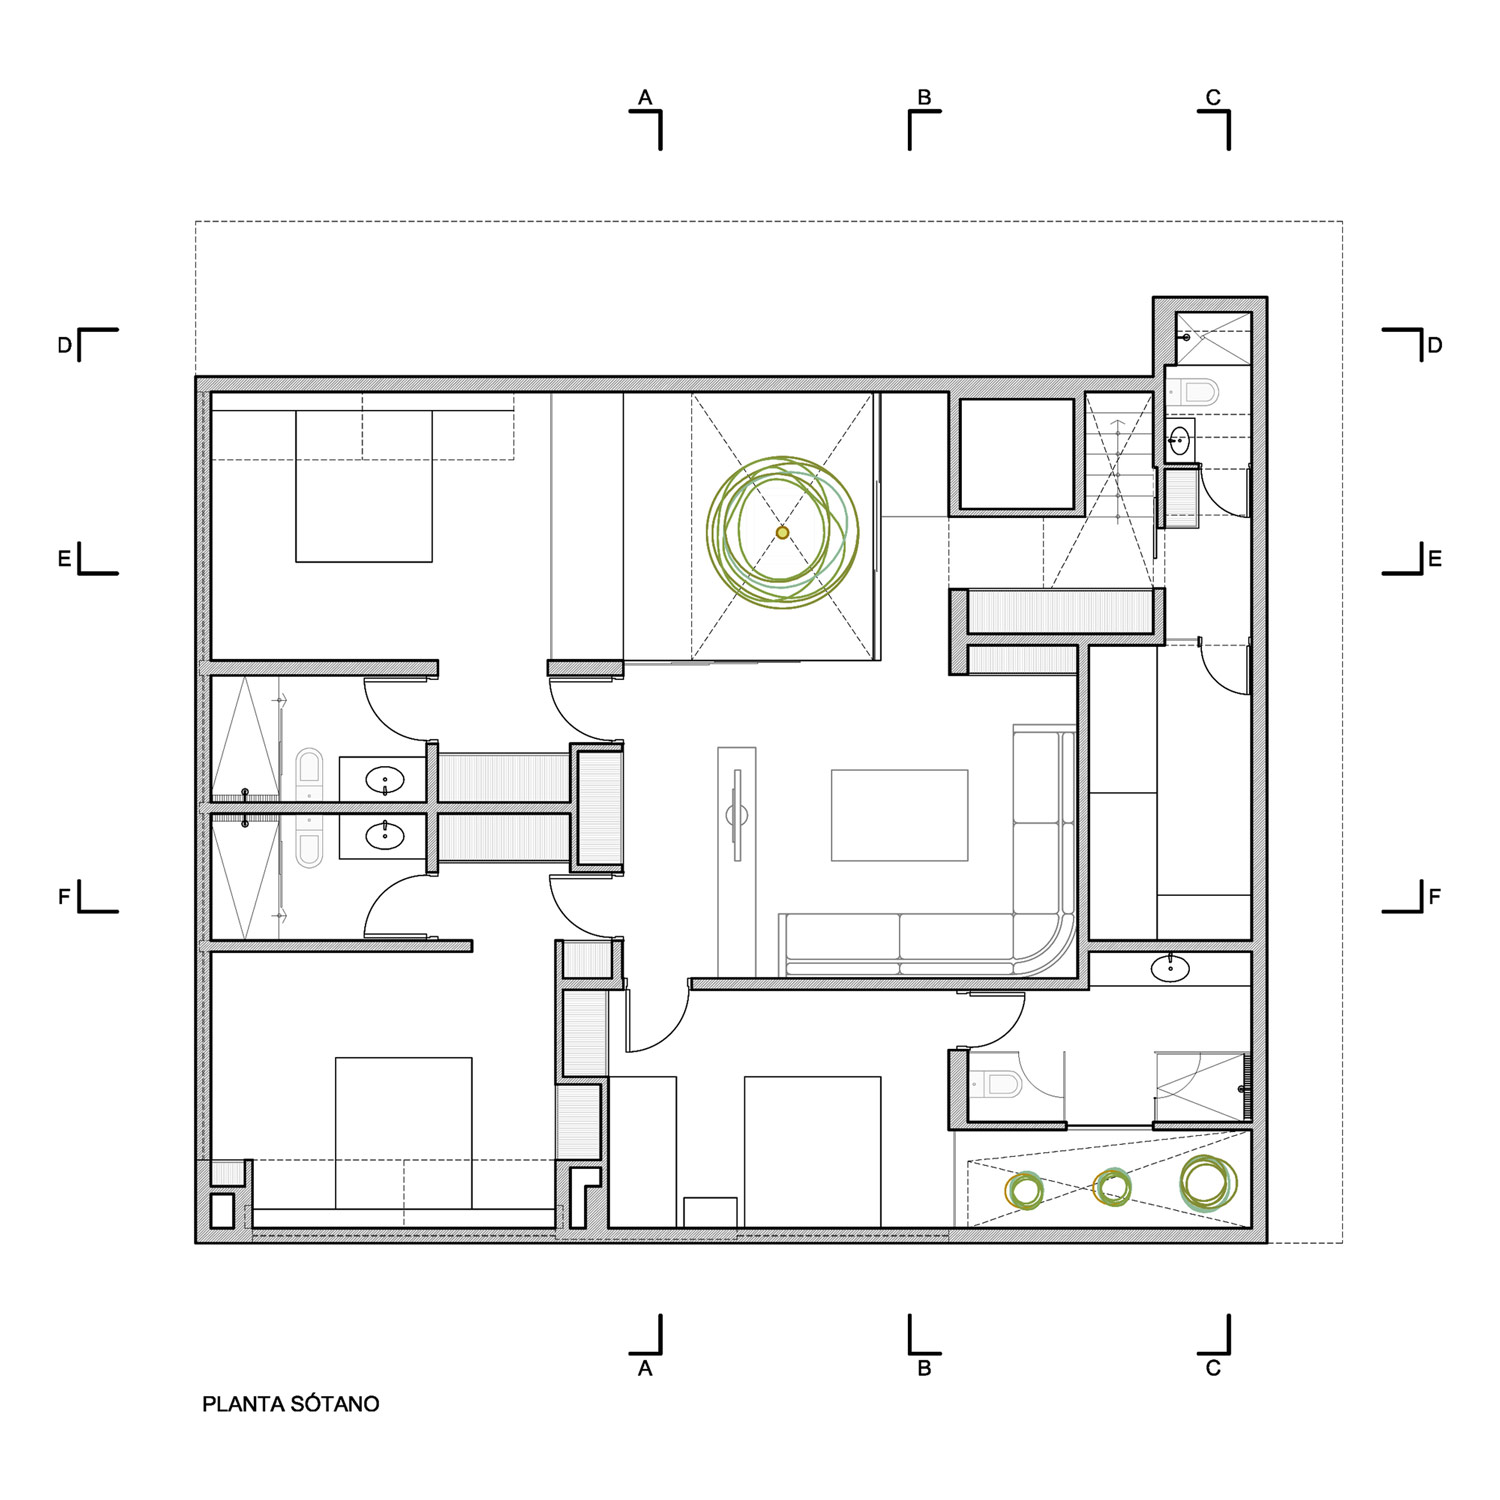 Basement floor plan luxury modern home in lima peru for Home plans with basement floor plans